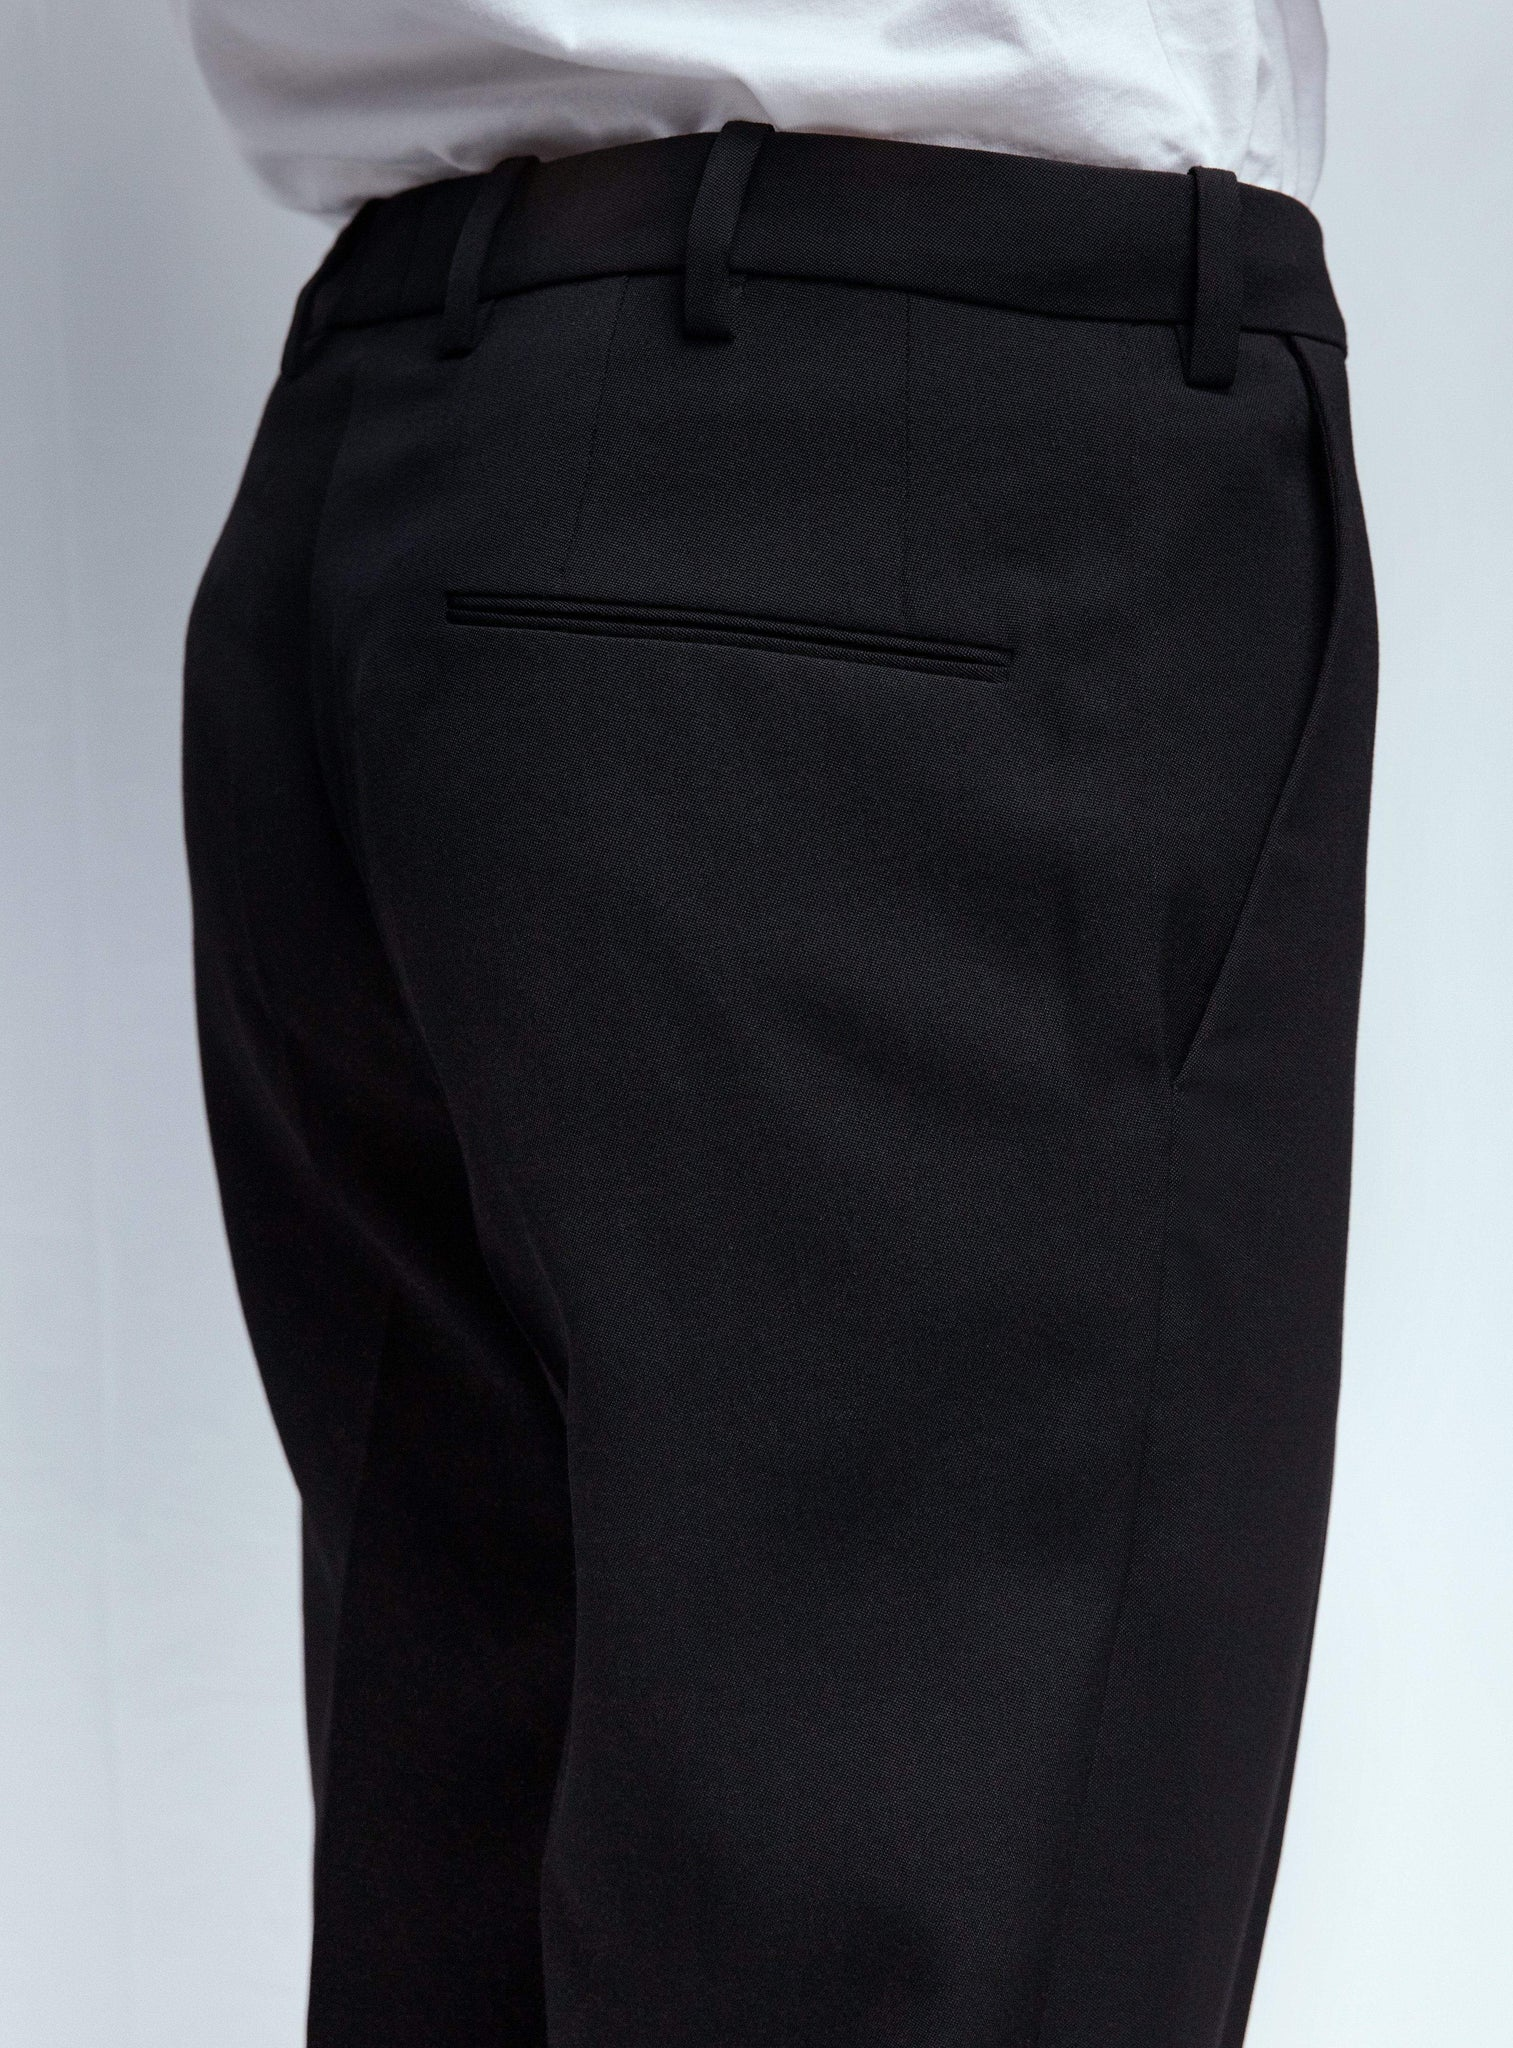 Wardrobe NYC Bottoms Trouser |M01 variant:color:black